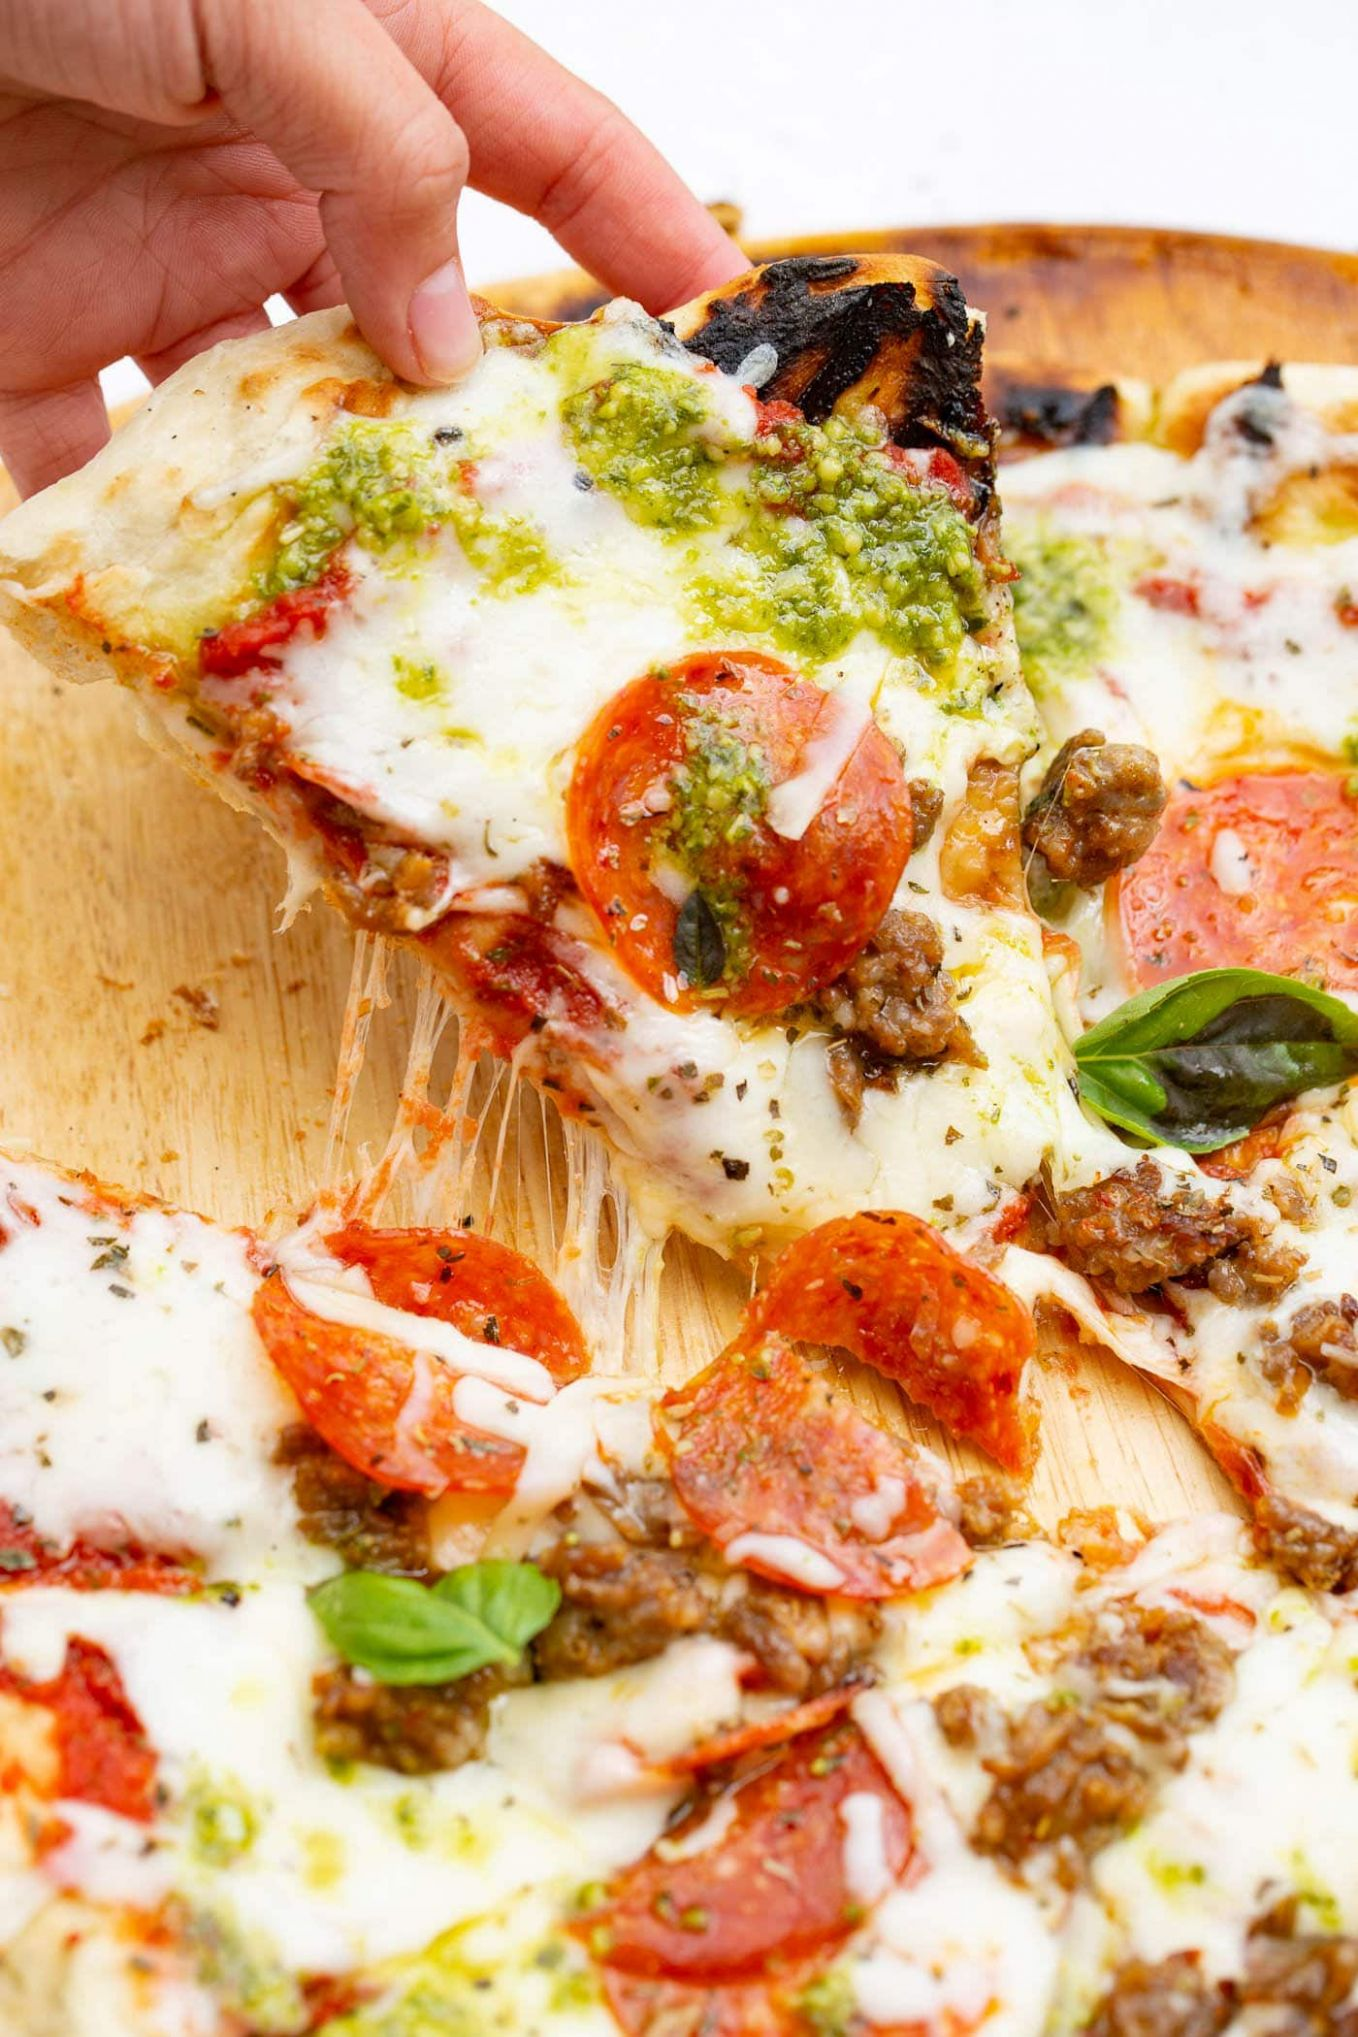 Pesto Pepperoni and Sausage Grilled Pizza